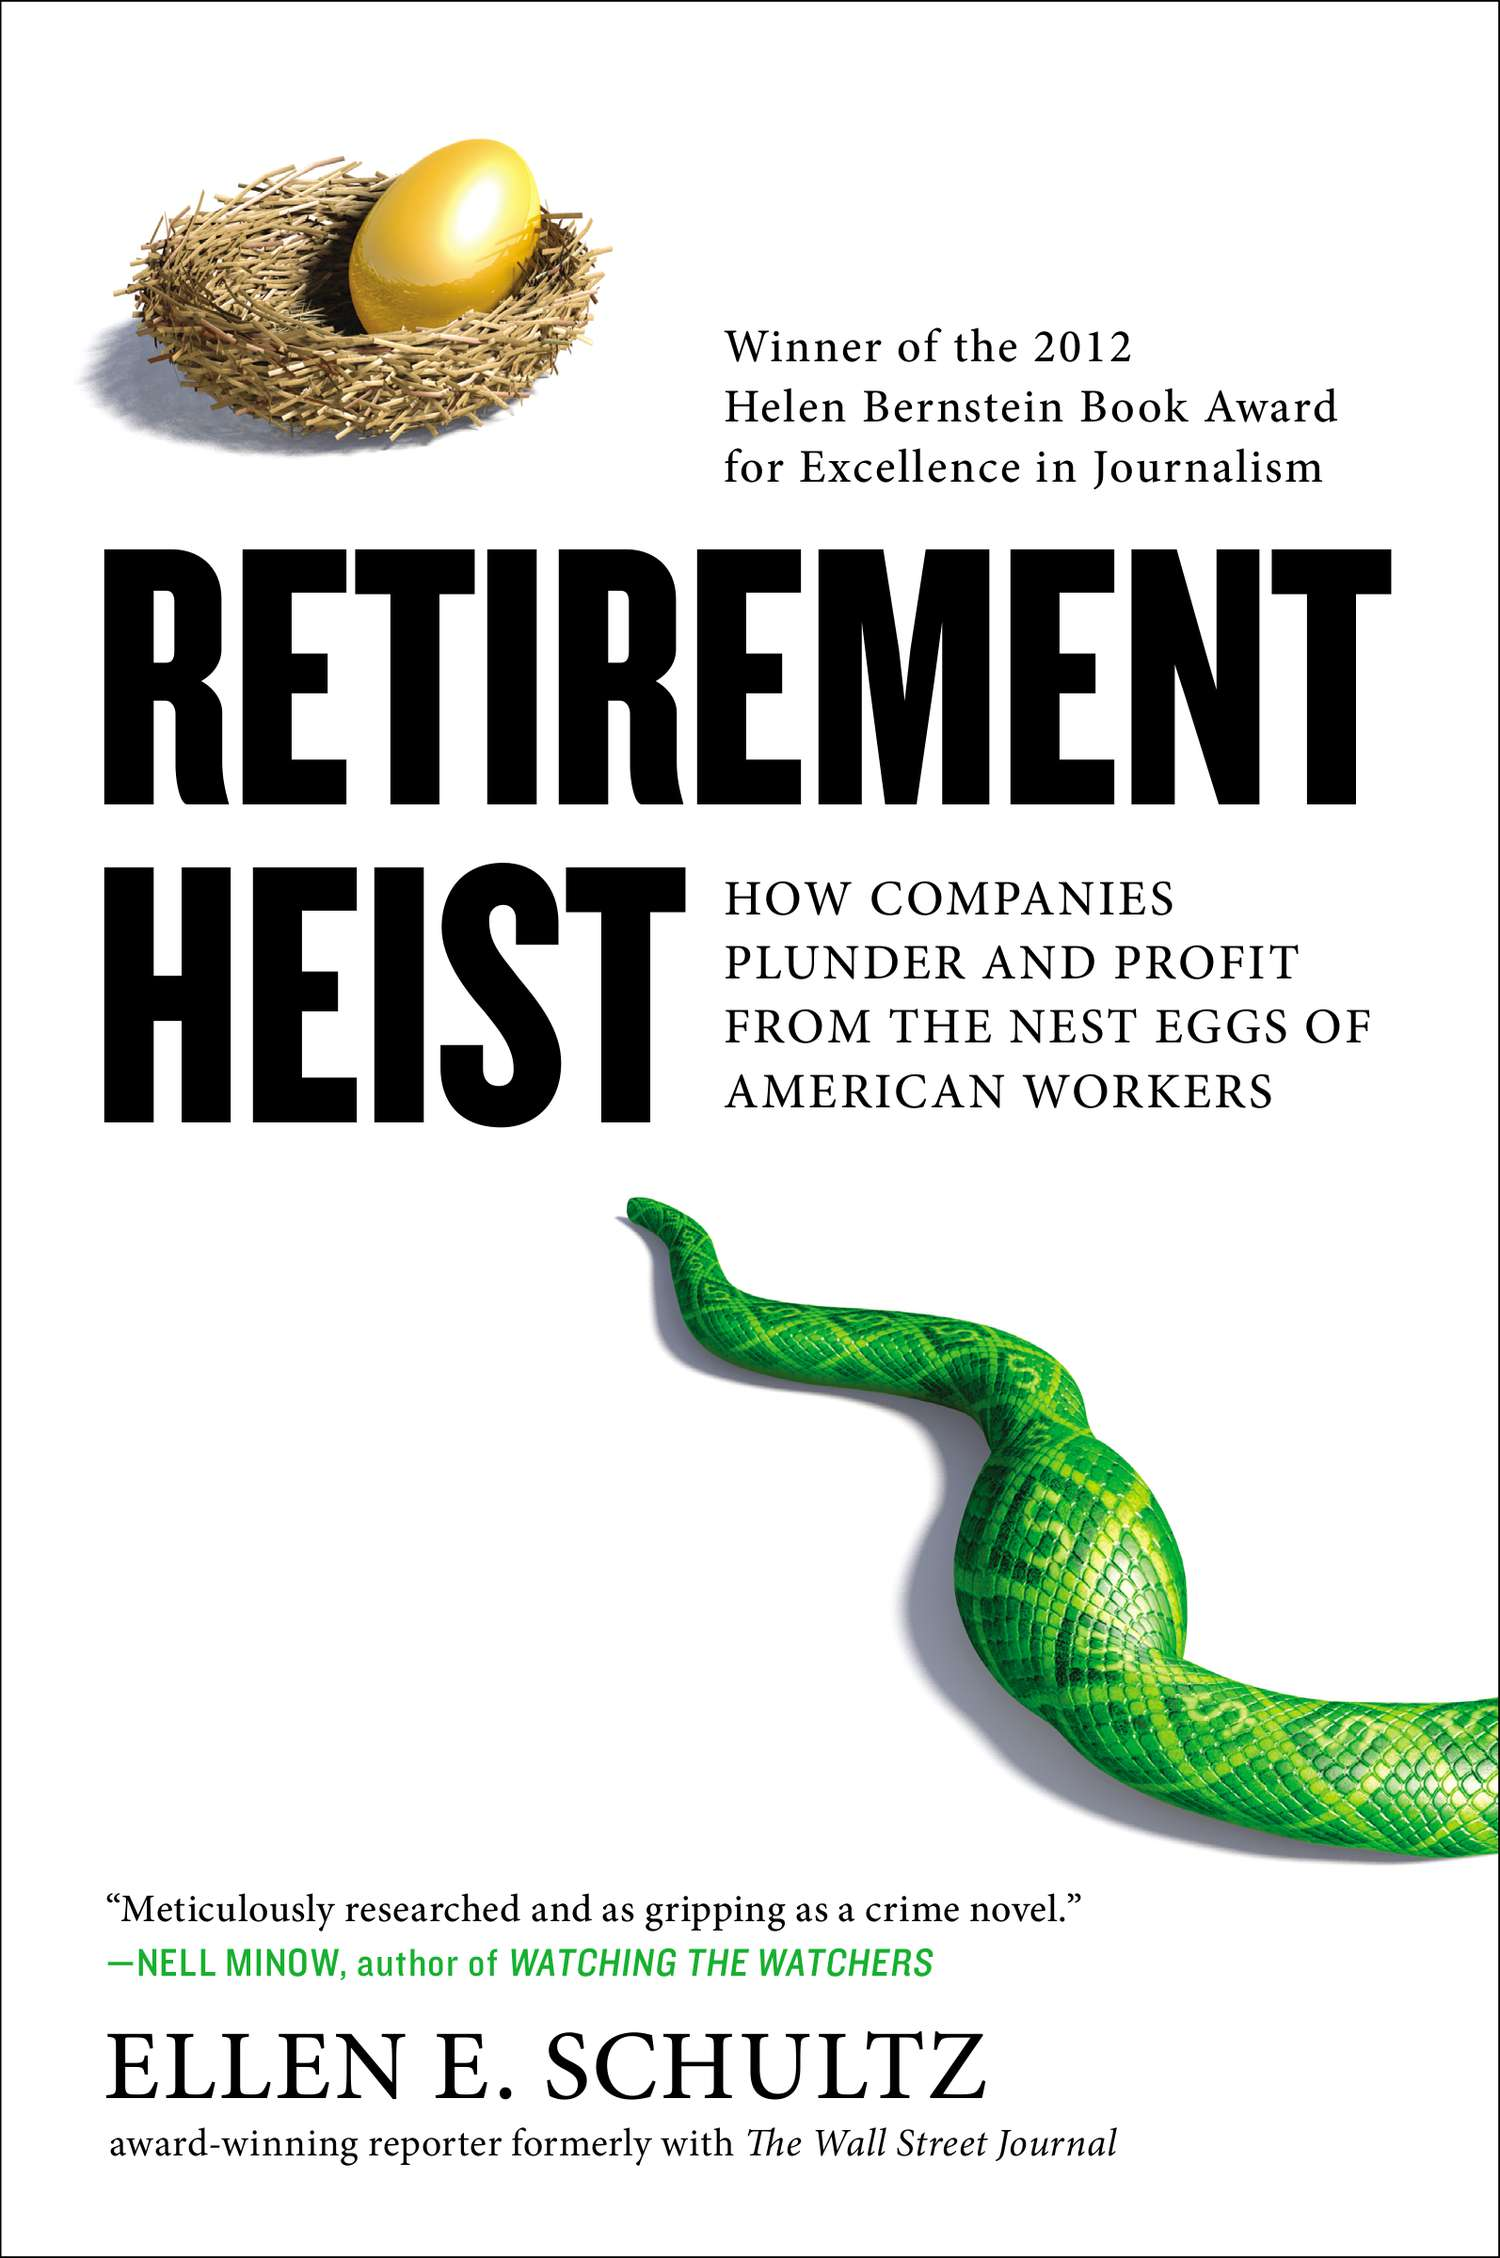 Download Ebook Retirement Heist by Ellen E. Schultz Pdf